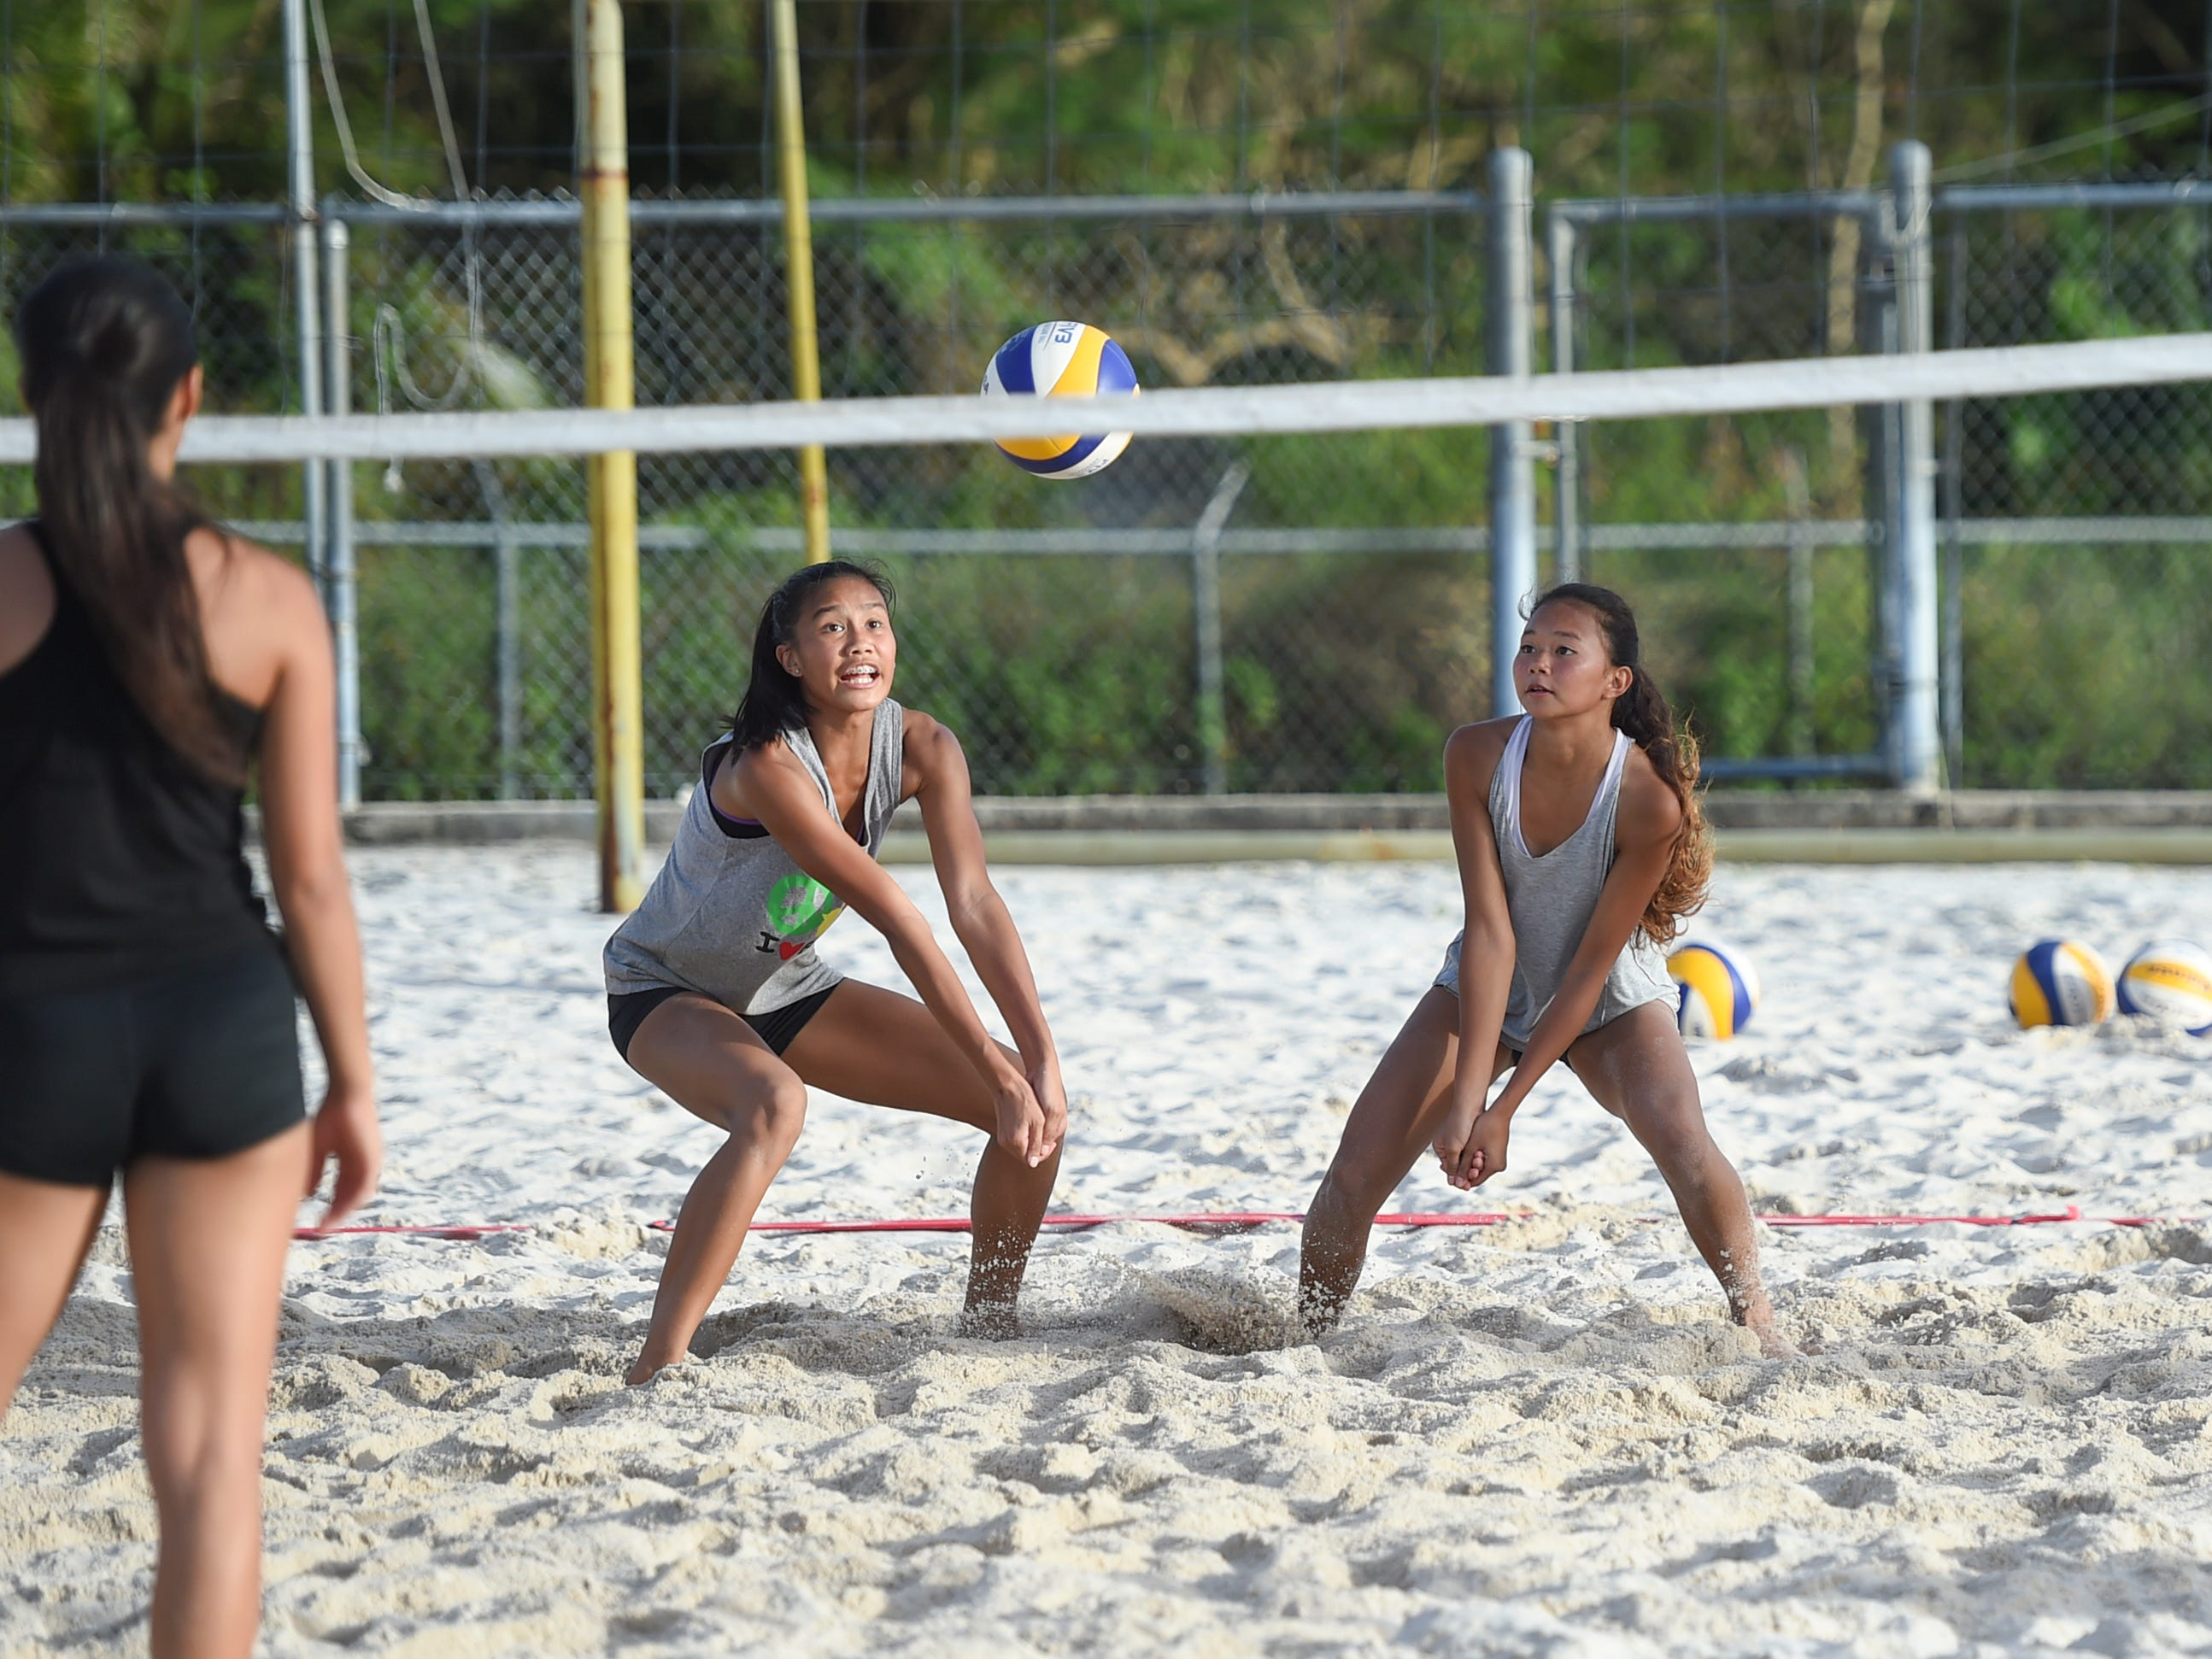 St. John's teammates Yasmeen Lopez, right, and Kristen Serrano look to bump the ball during the IIAAG Beach Volleyball championship game at the Guam Football Association National Training Center in Dededo, March 12, 2019.